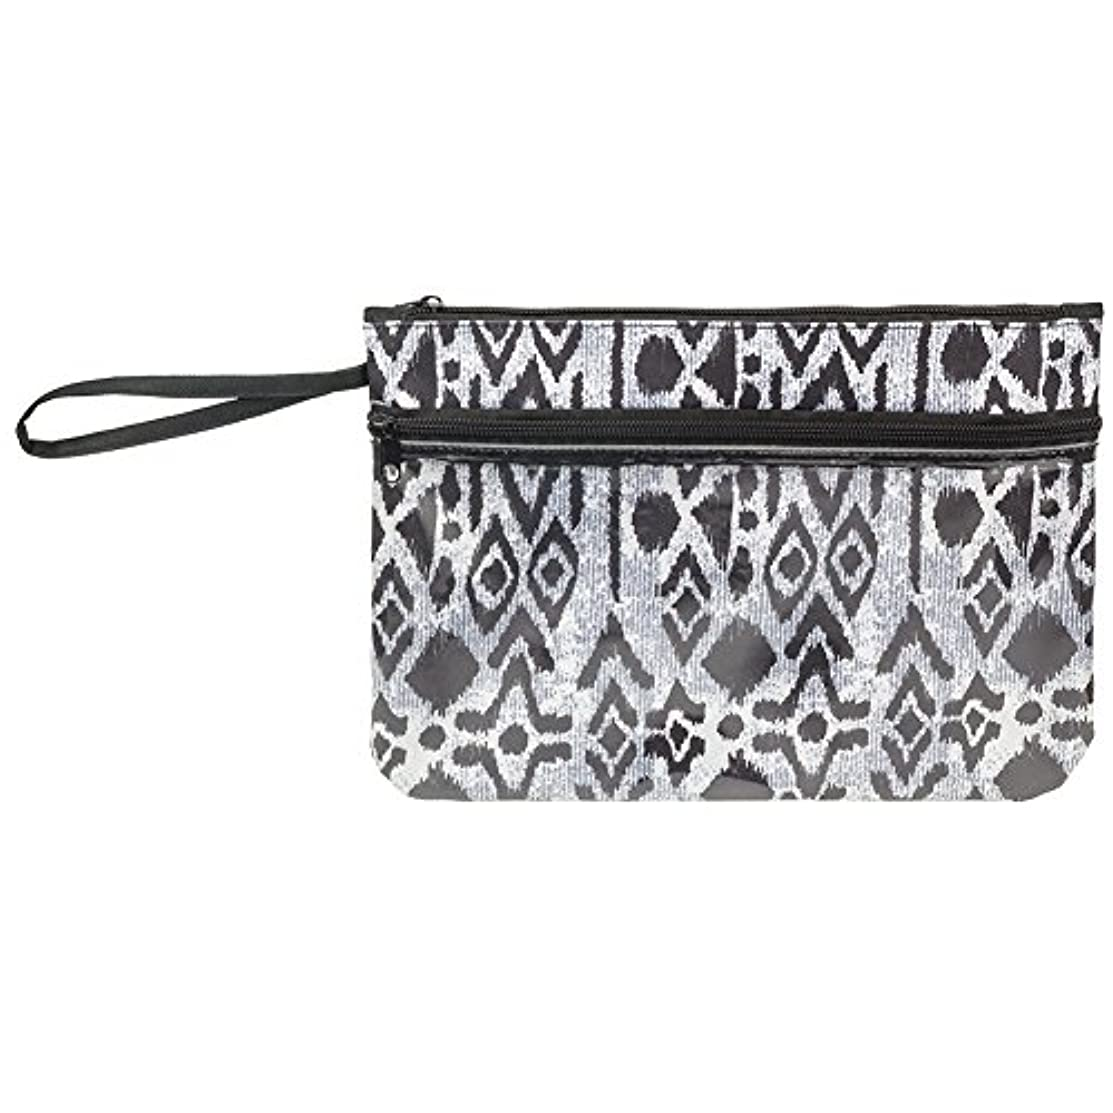 Zipper Pouch Bag with See-Thru Front Zippered Pouch (Black & White)